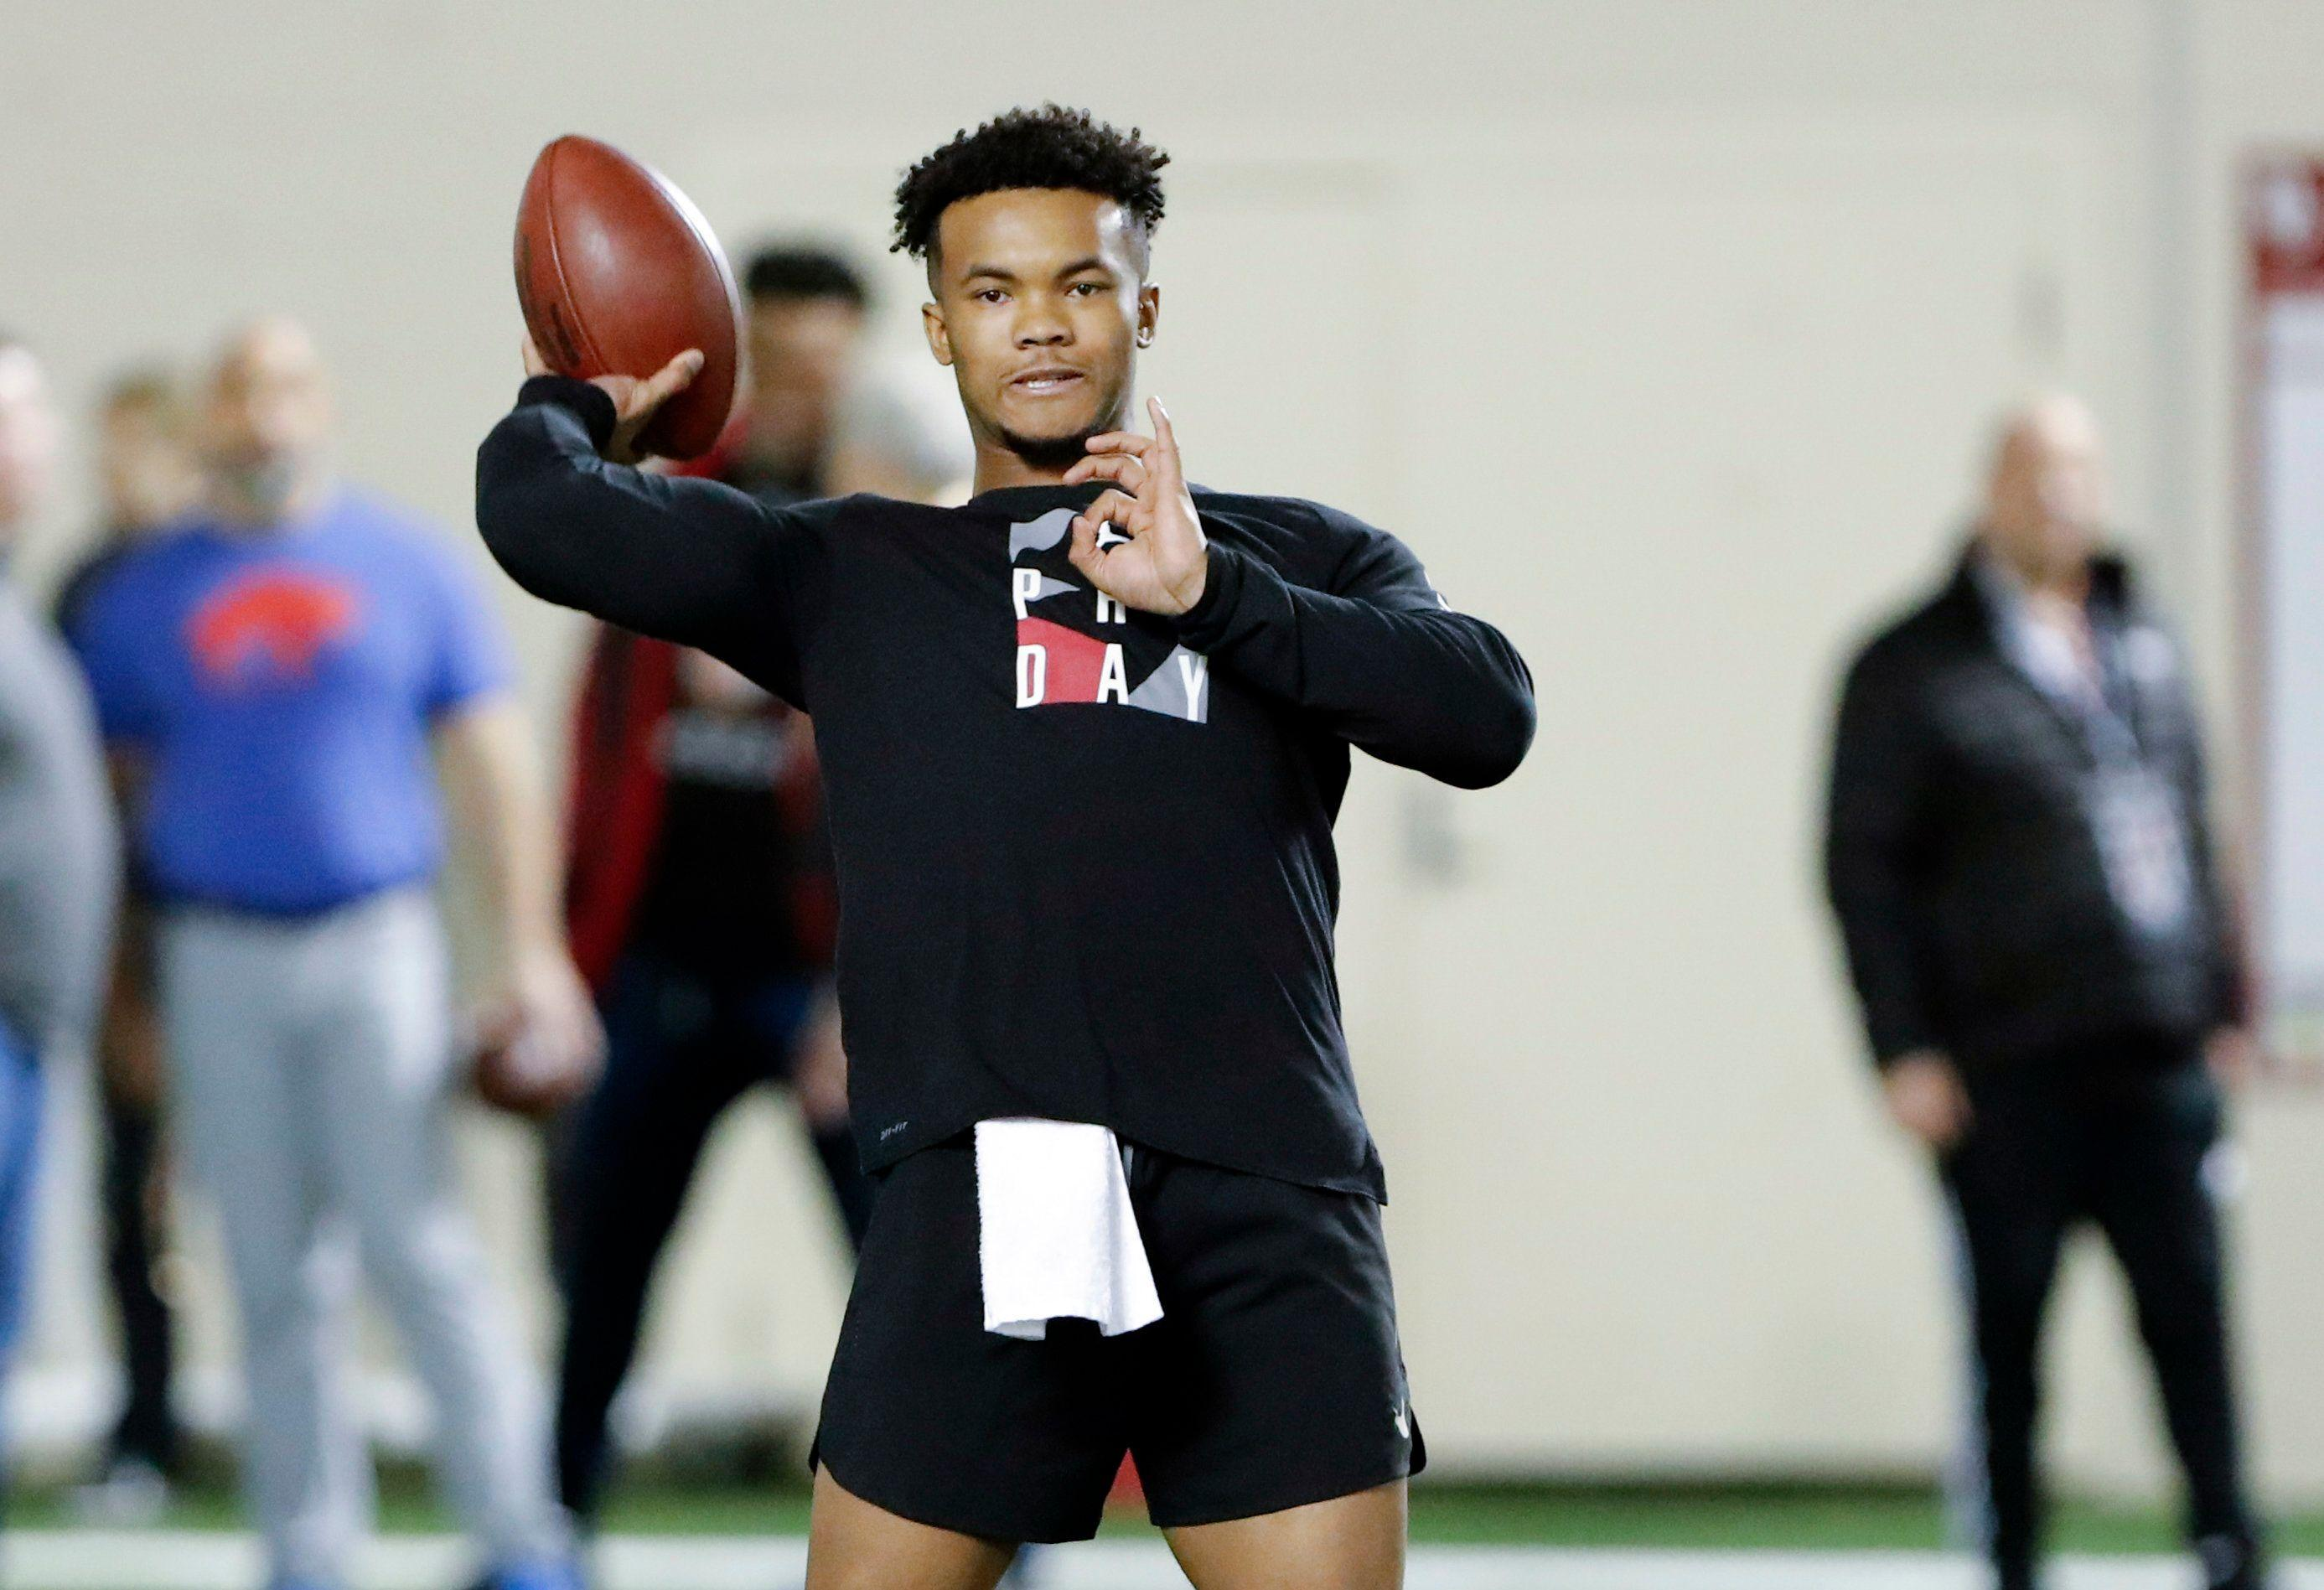 Fantasy Snapshot: The top QBs in 2019 NFL Draft